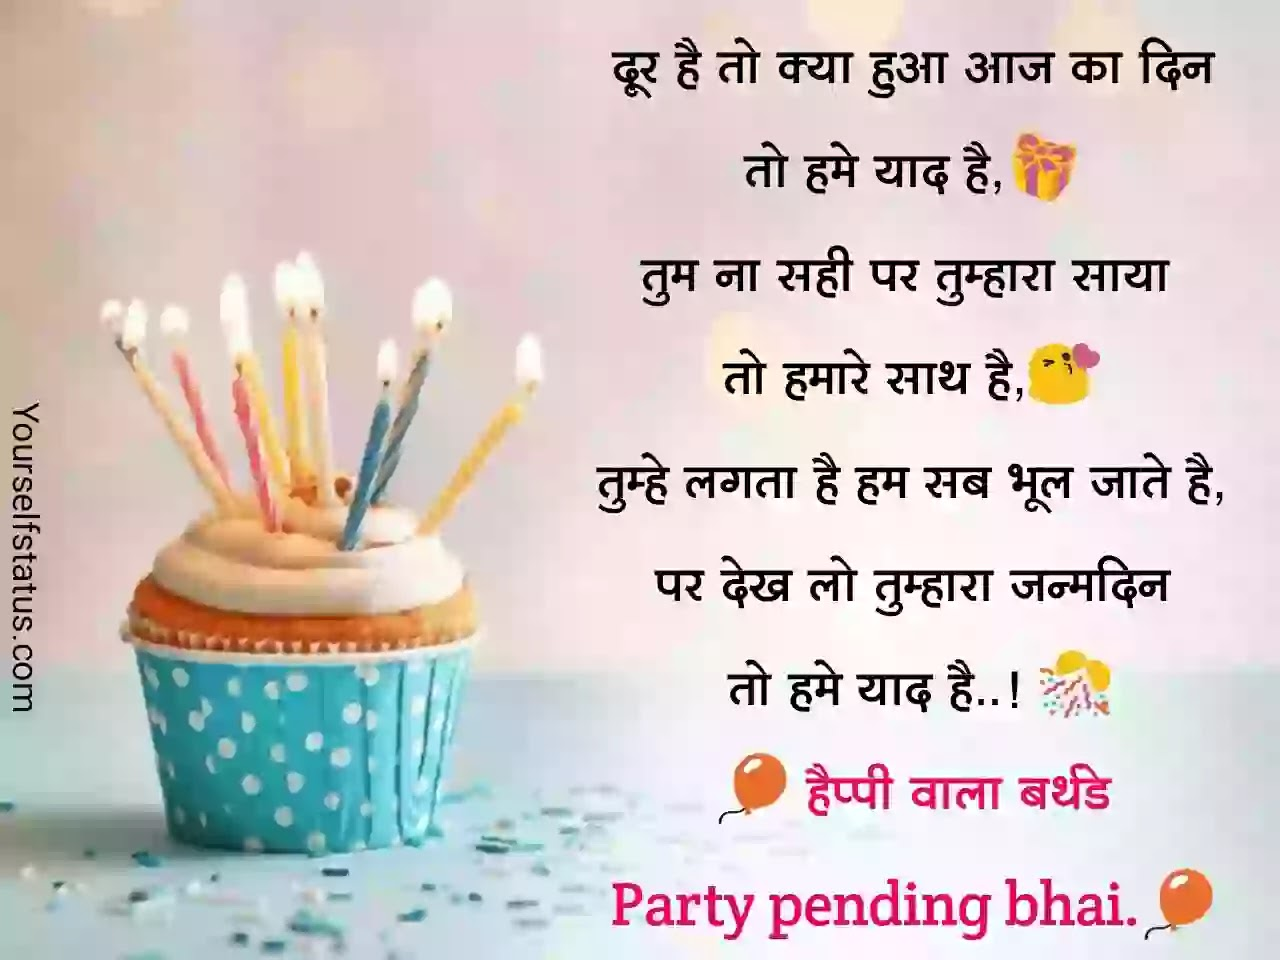 Birthday-messages-for-friend-in-hindi